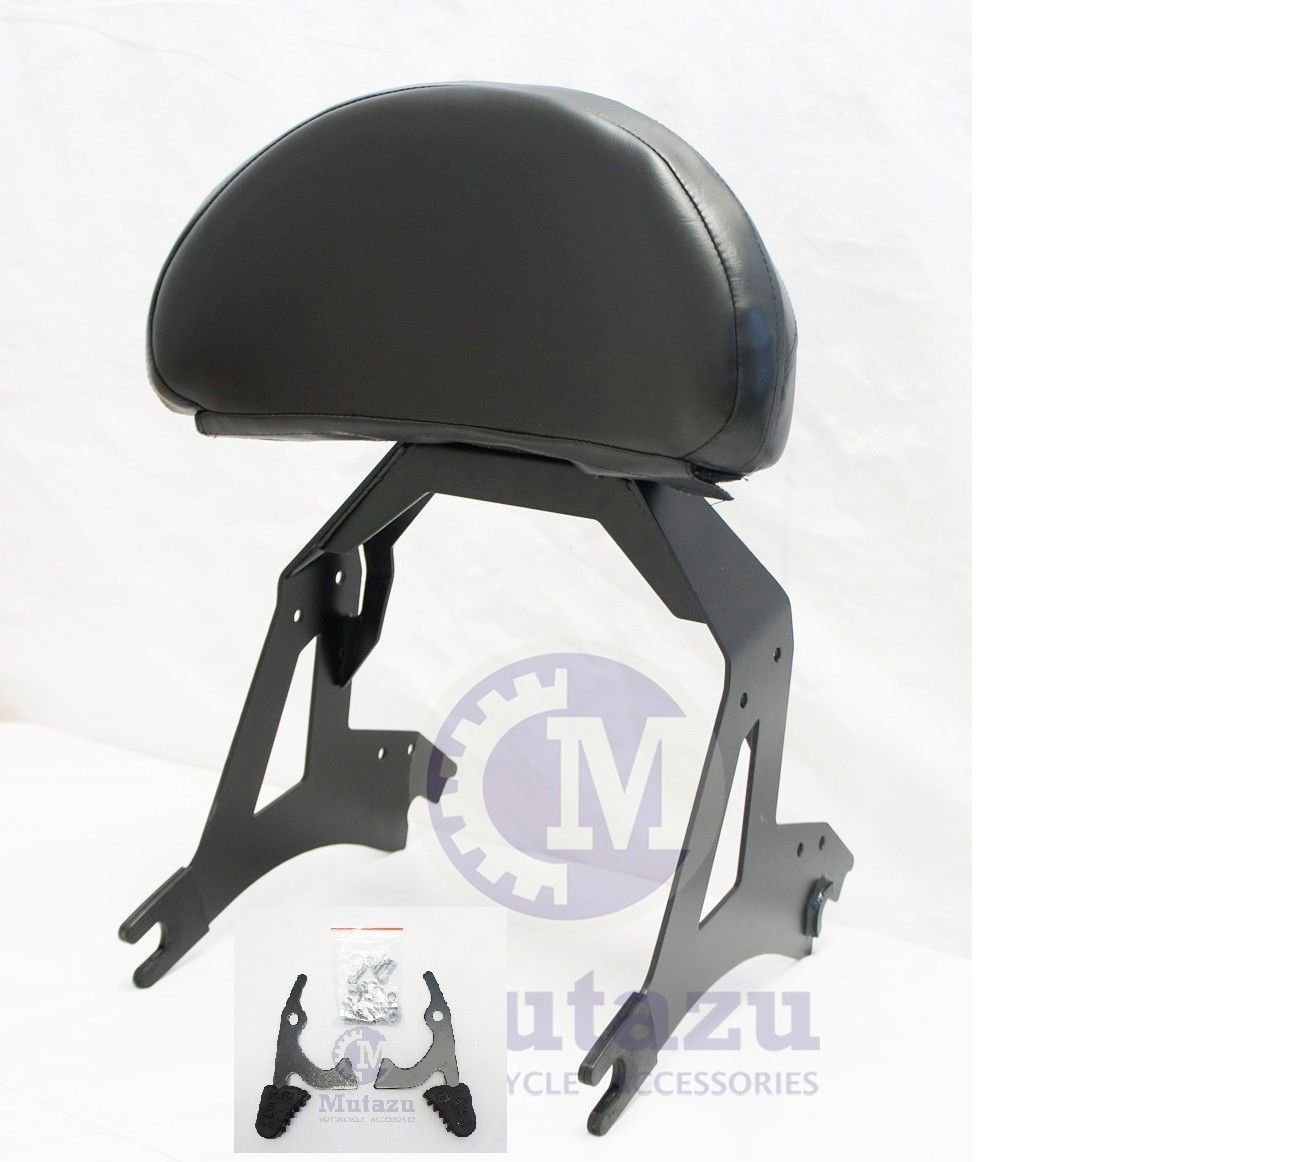 Mutazu Detachable Passenger Backrest Sissy Bar For Victory Cross Country Road